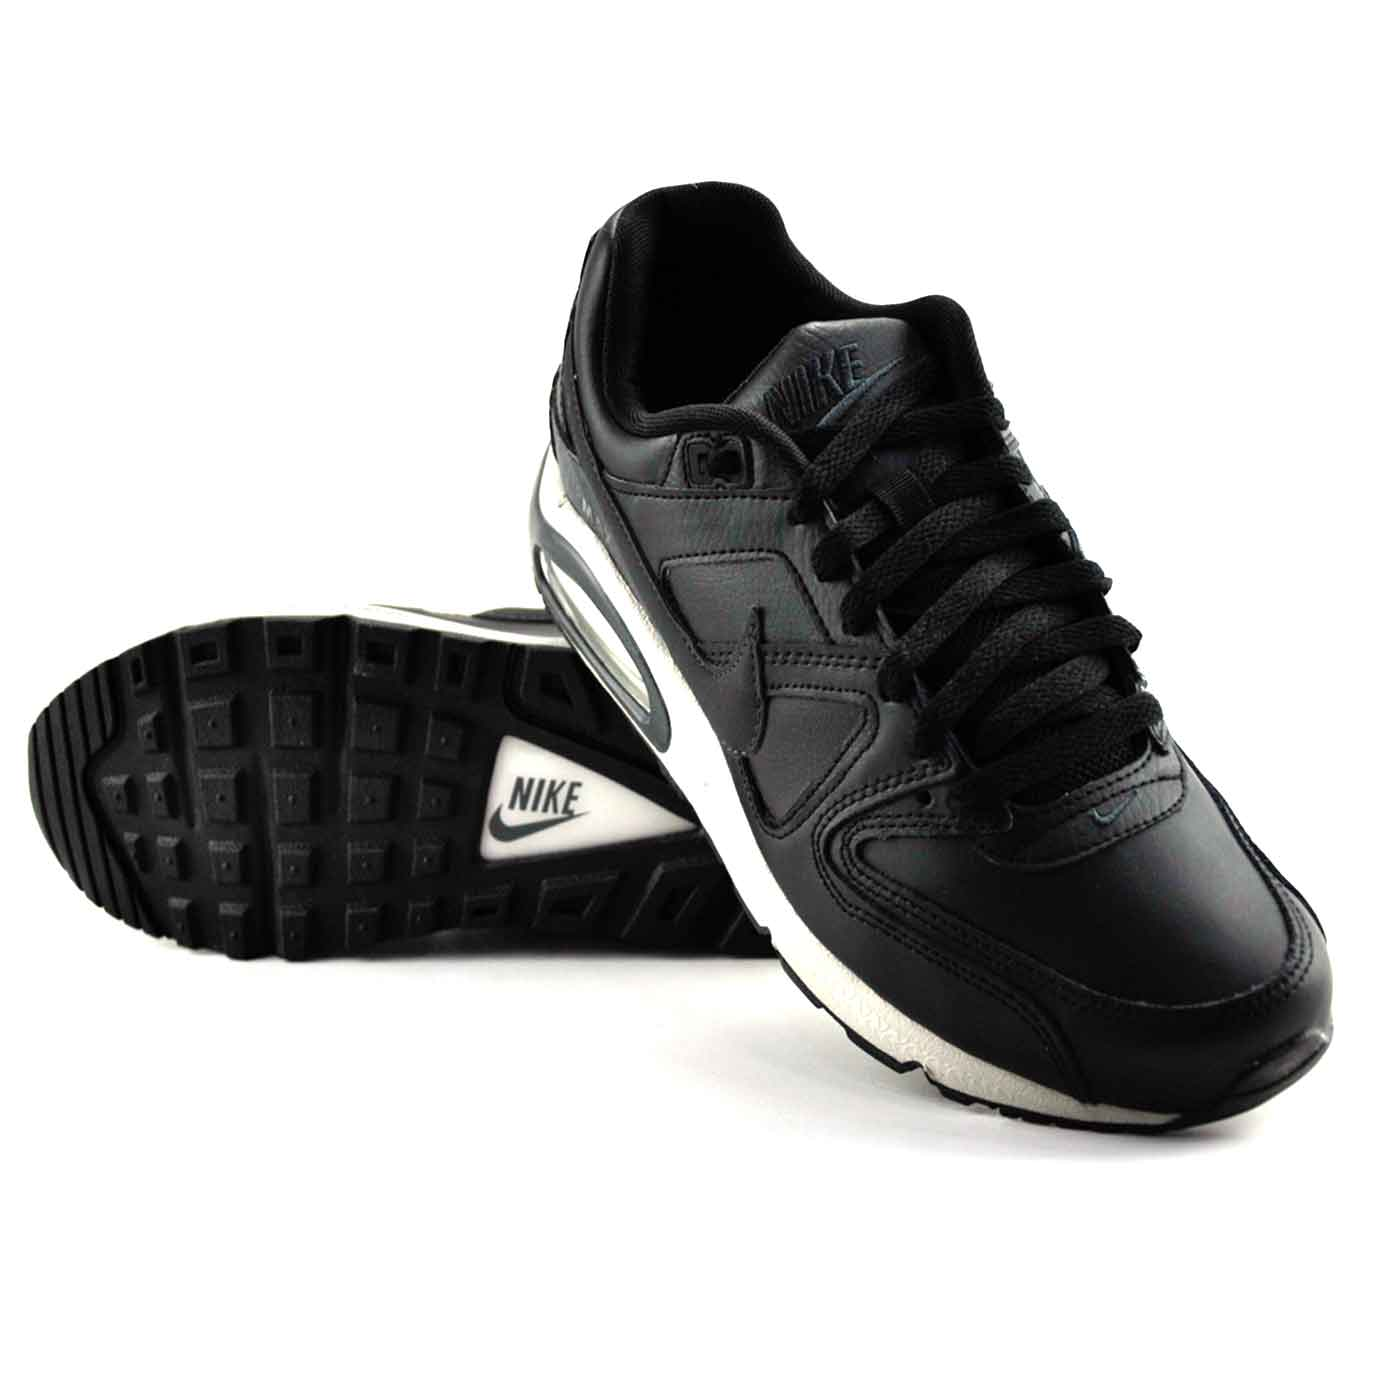 TENIS NIKE AIR MAX COMMAND LEATHER - 749760